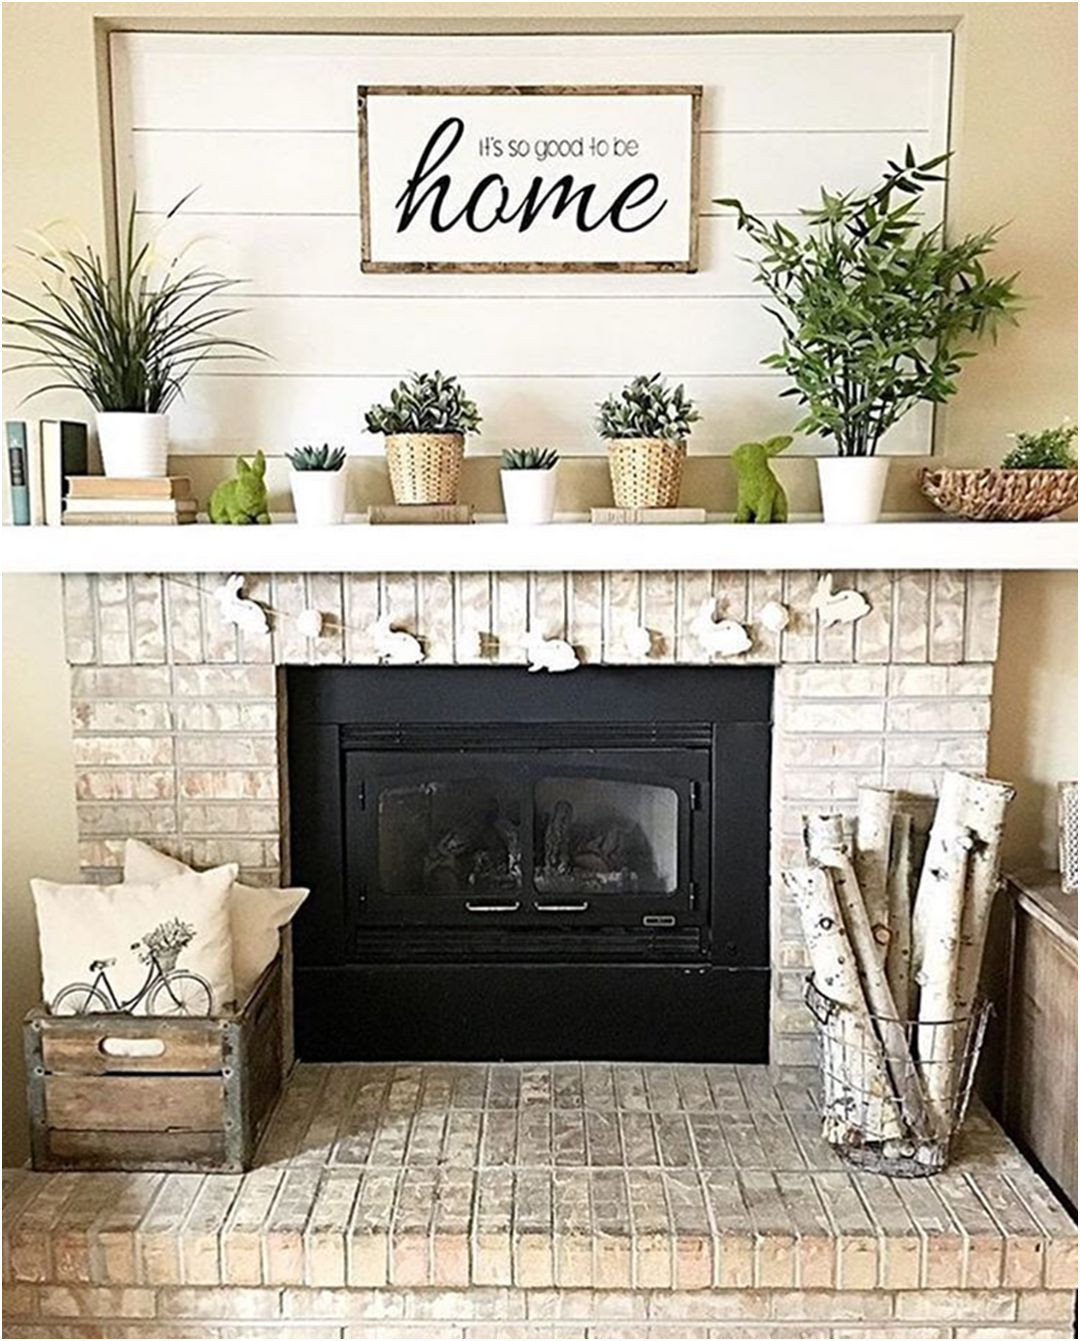 Decorating Ideas for Fireplace Mantels Unique Farmhouse Fireplace Mantel Decor Decor It S